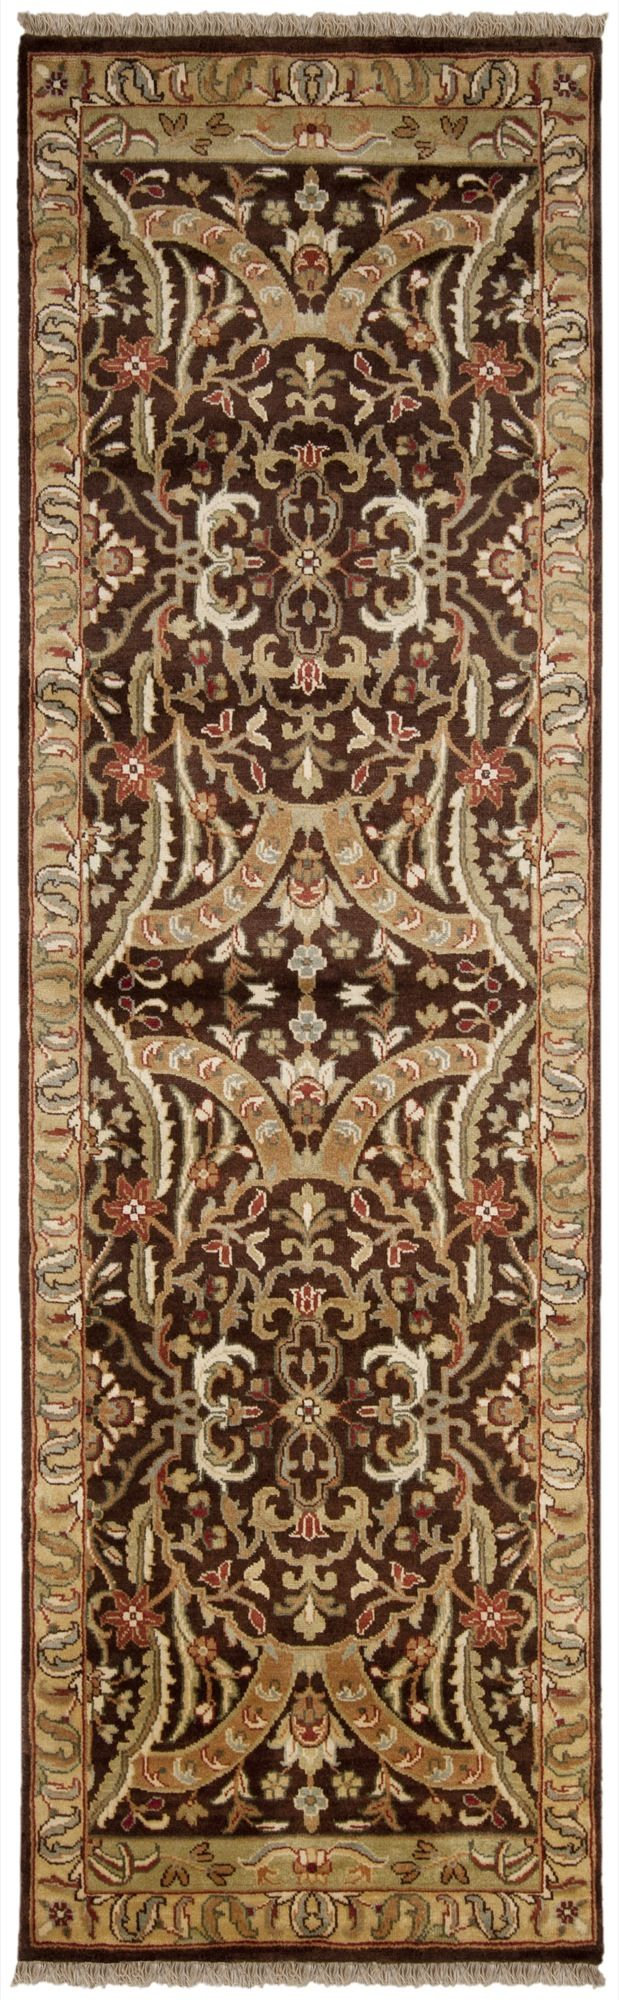 surya taj mahal traditional area rug collection